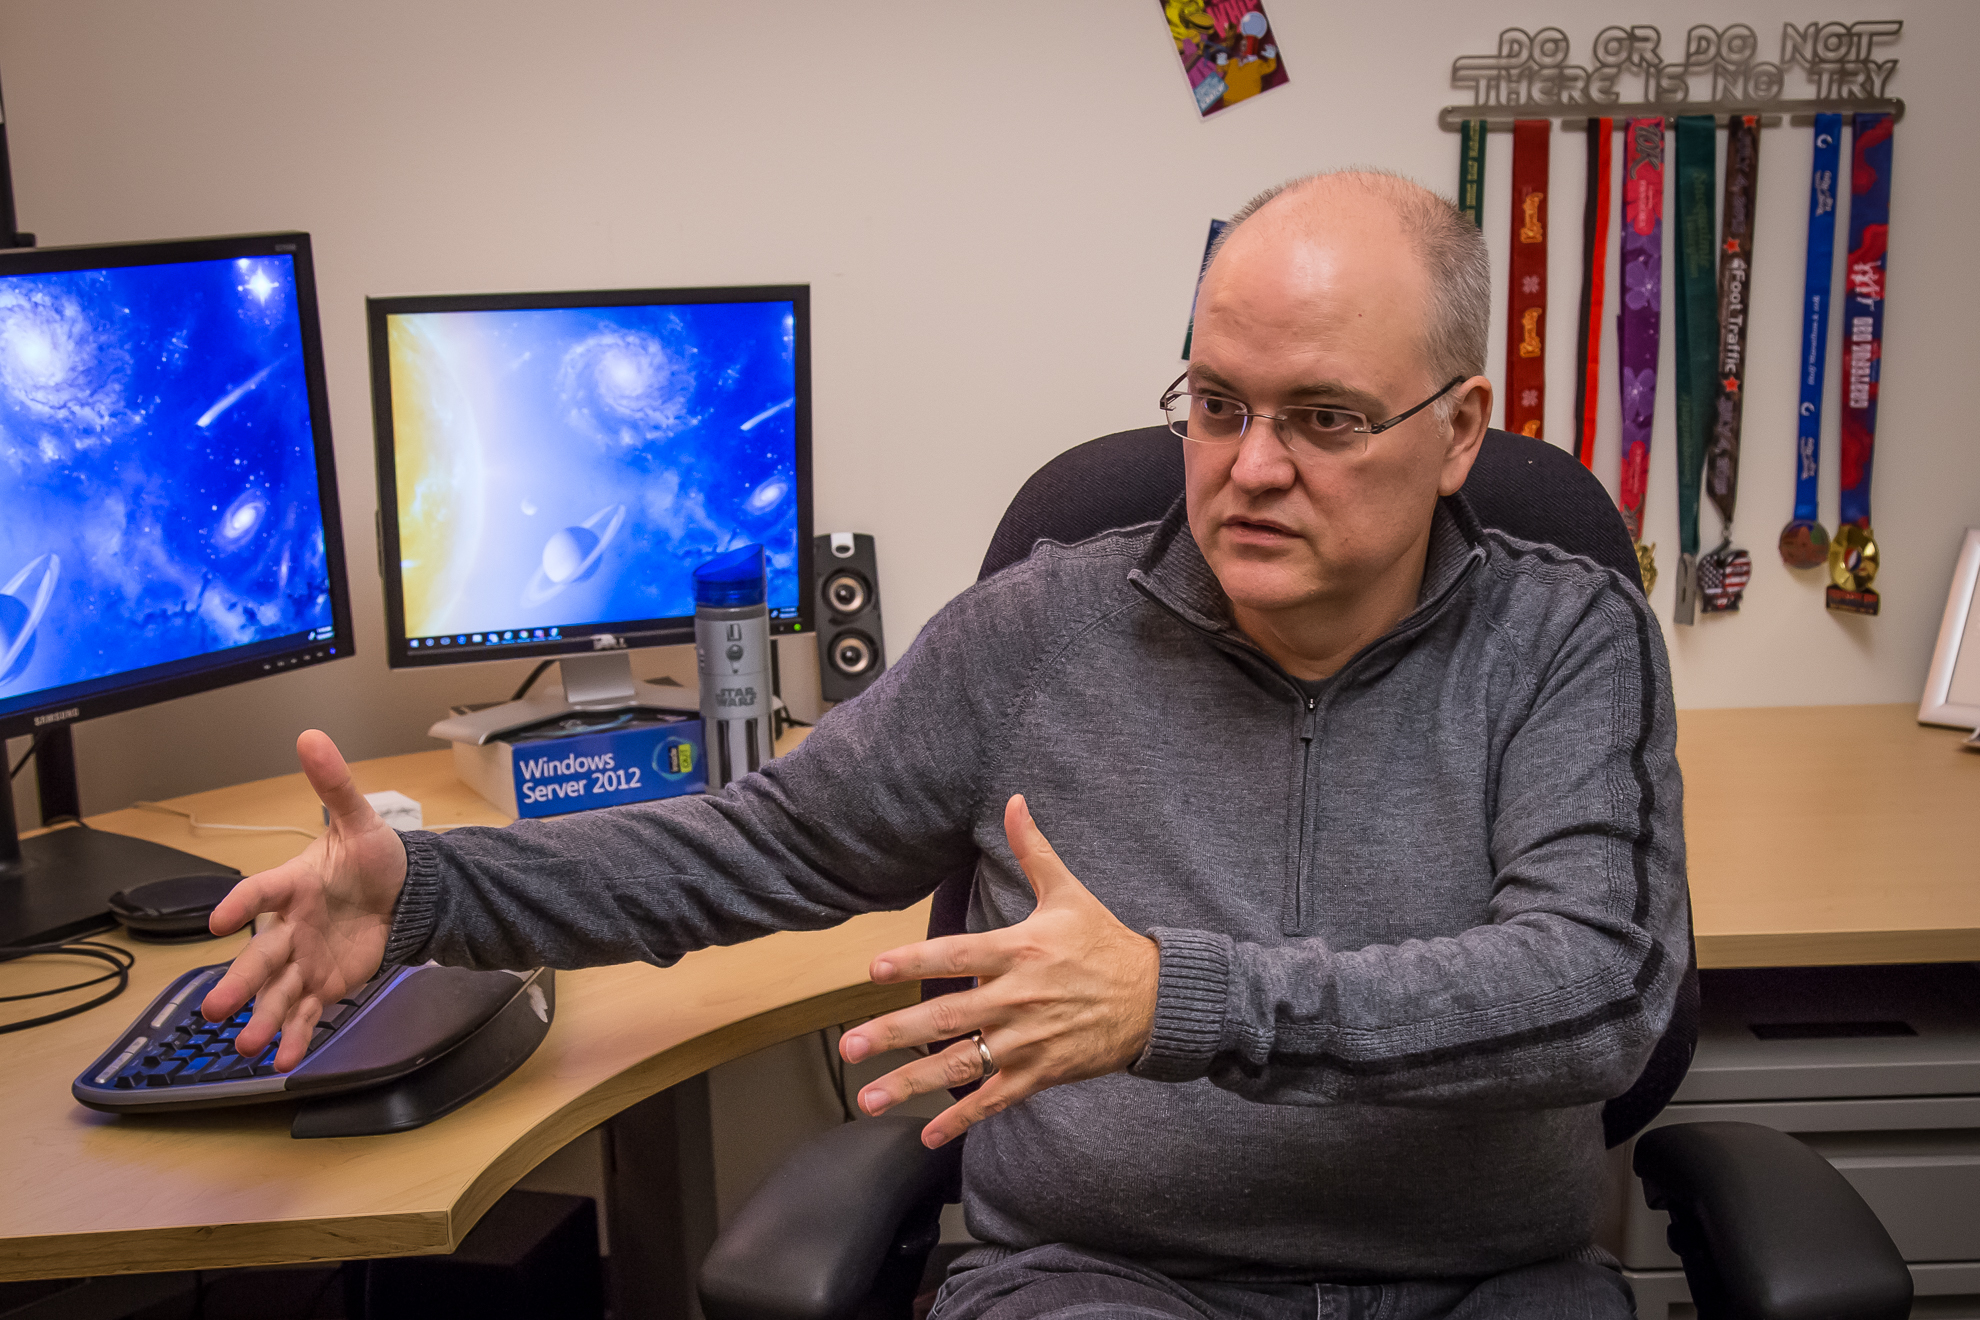 Pete Apple sits at his desk in his office, gesturing with his hands as he makes a point to someone